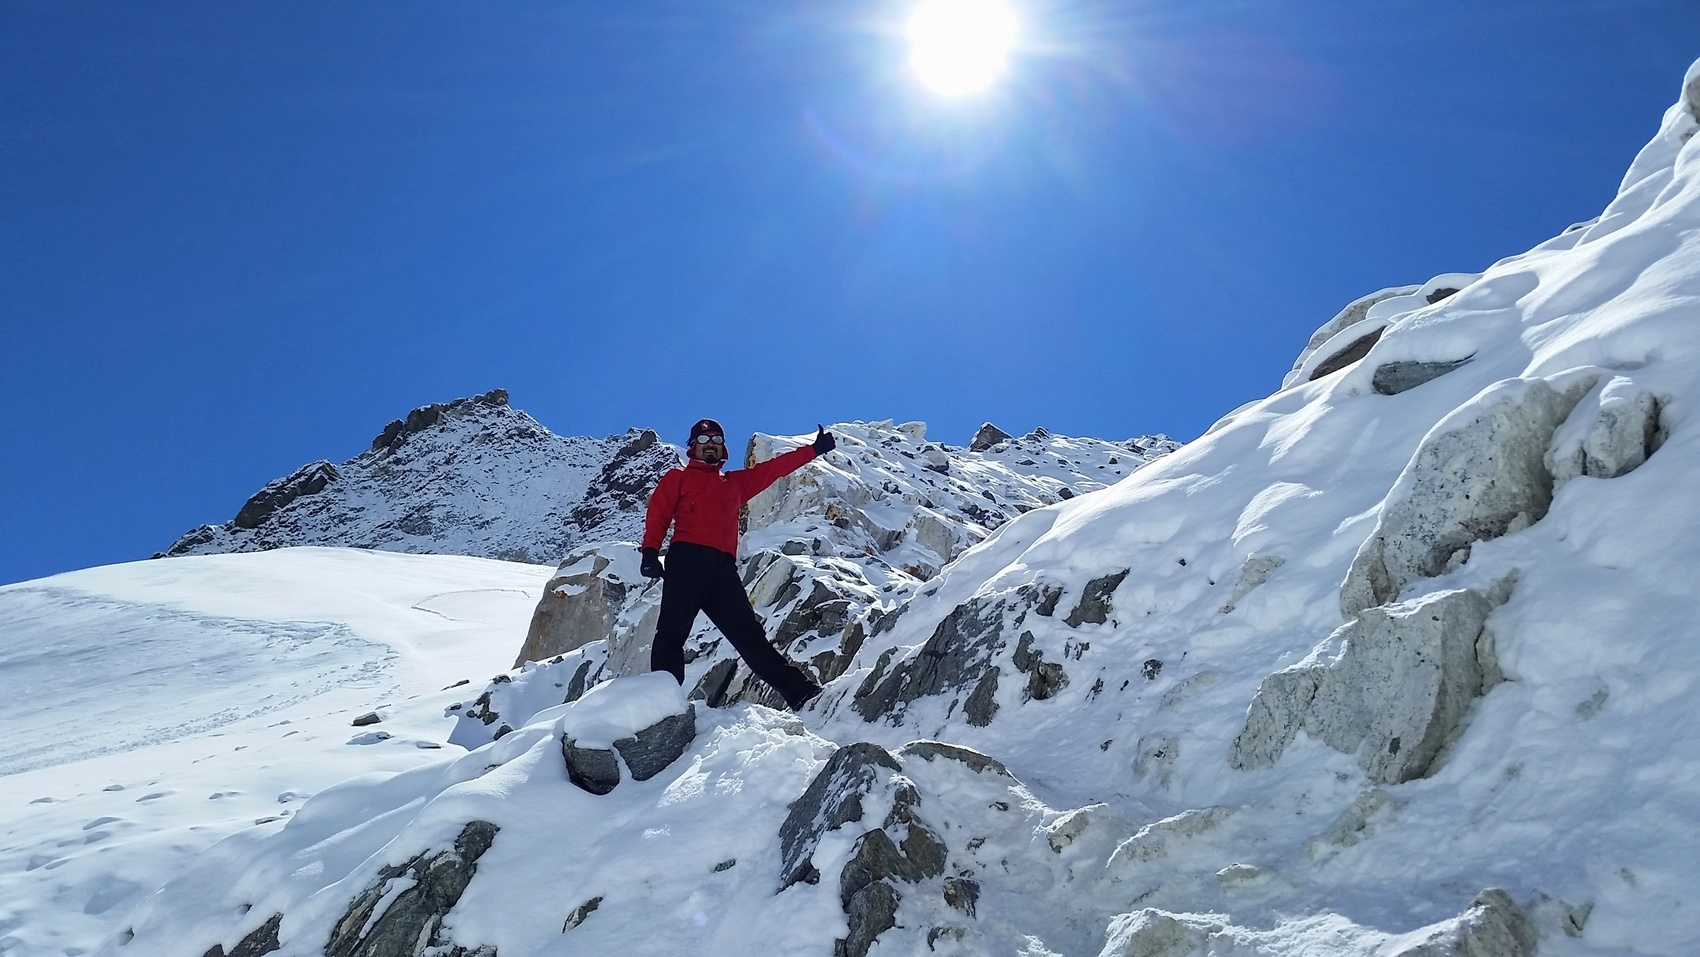 A Sherpa on snowy Cho La Pass gives the thumbs up signal under sunny, blue skies